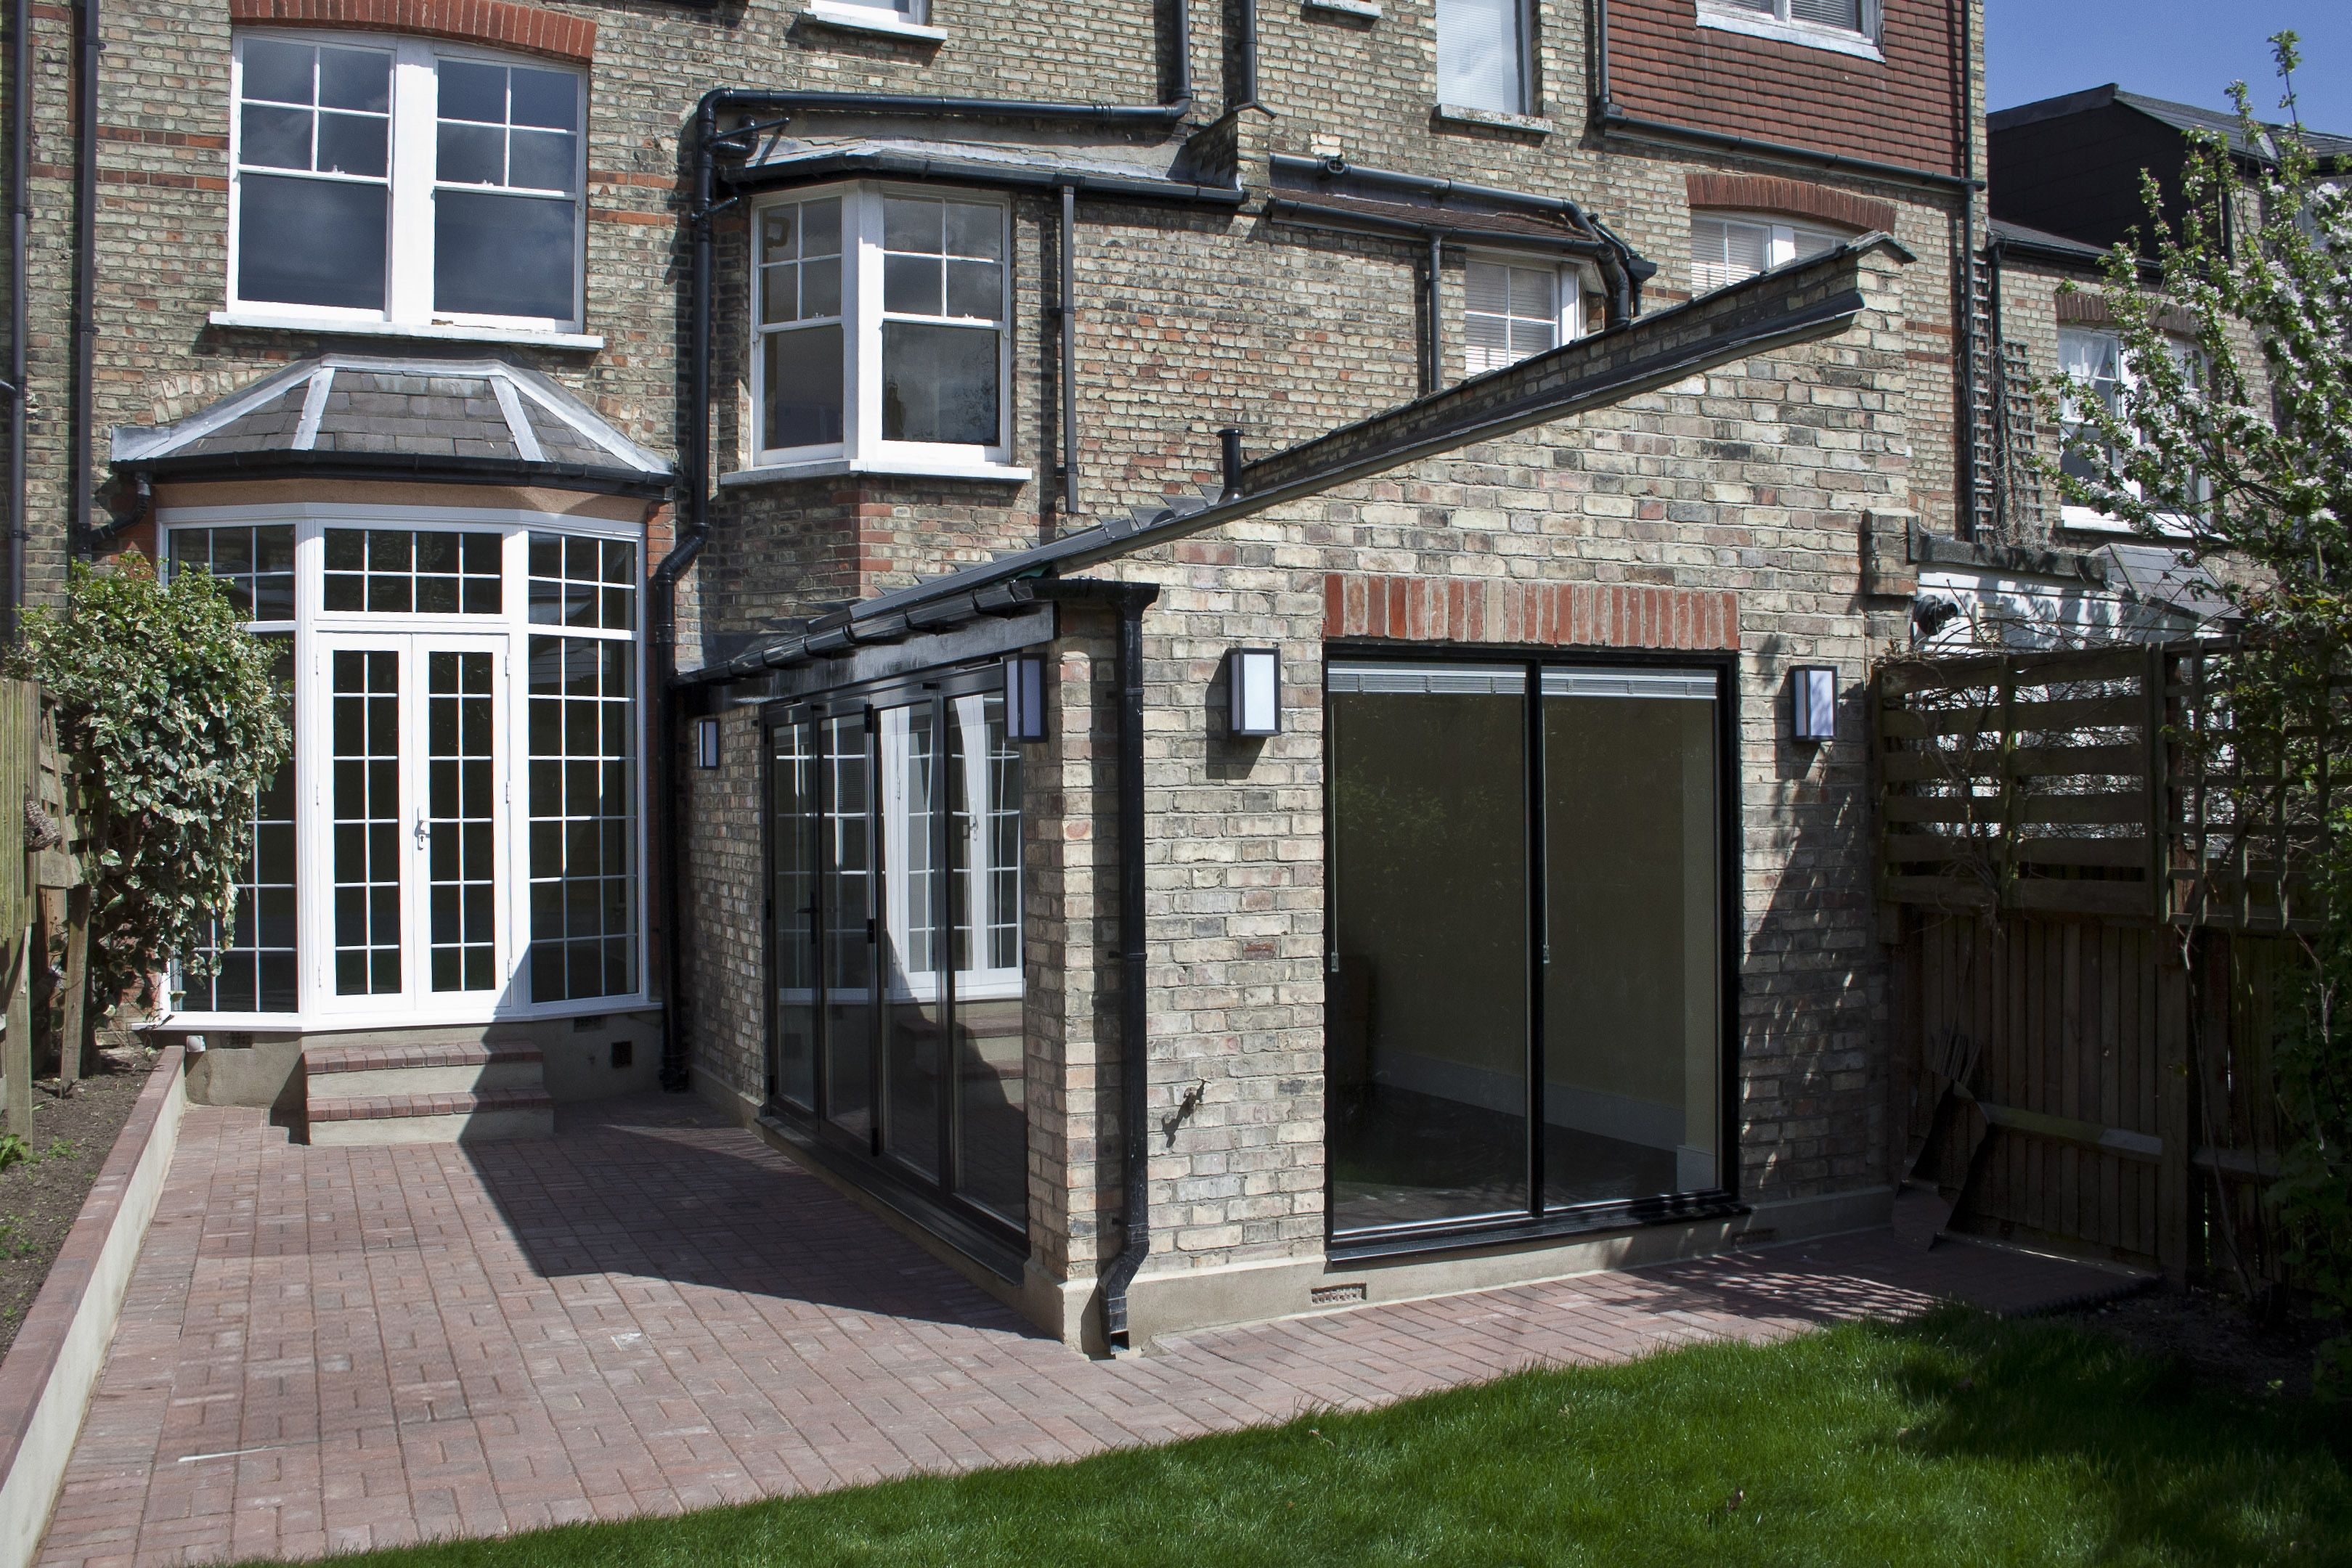 17 Best Images About Rear Extention On Pinterest Rear Extension London And Side  Return